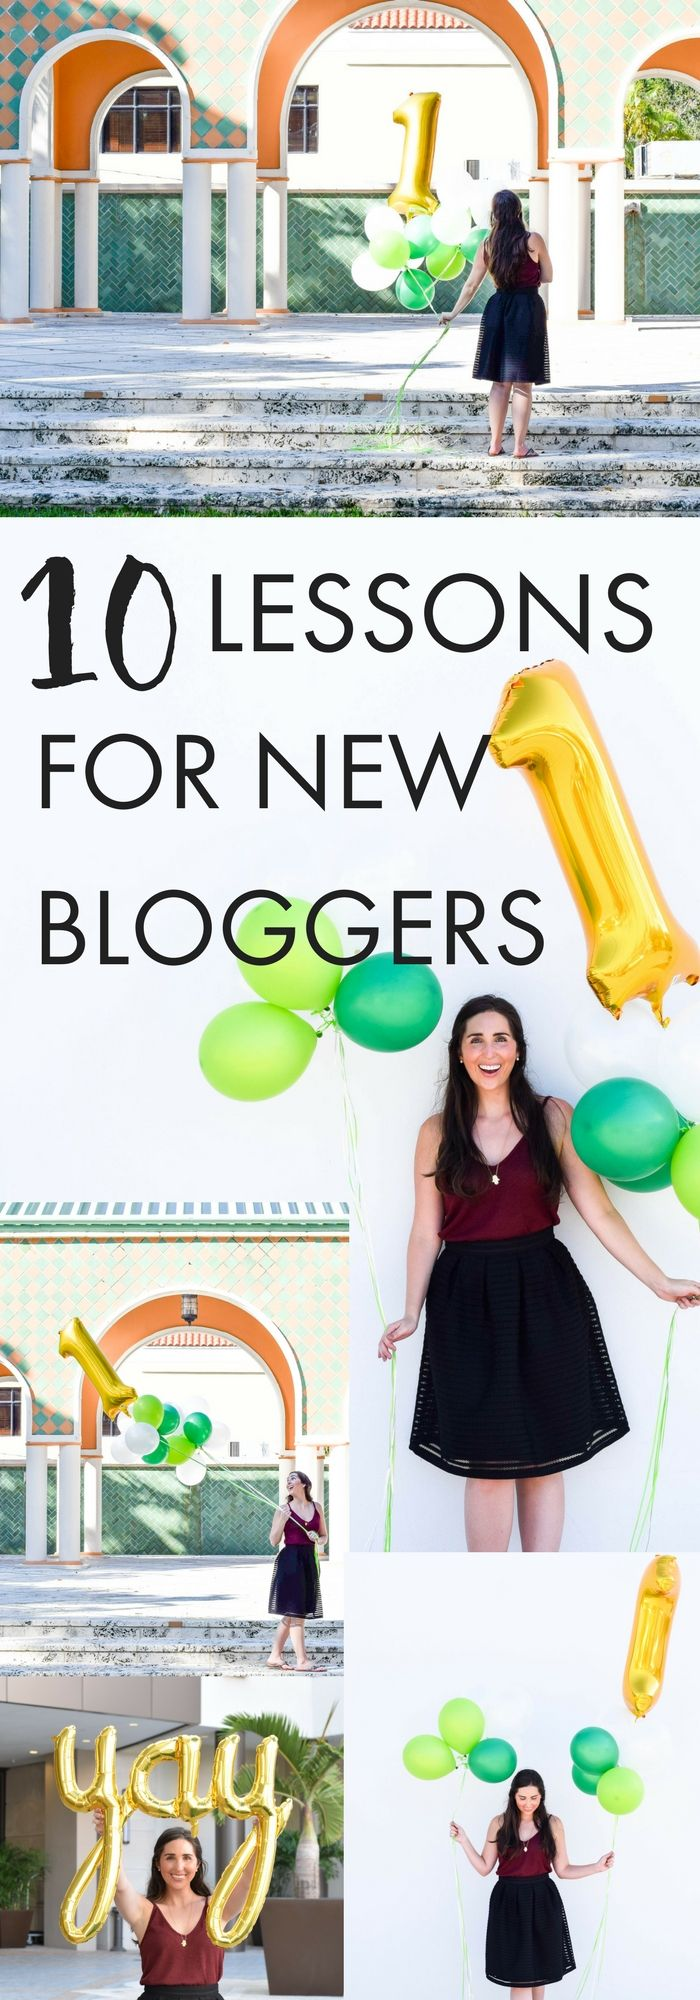 beginning blogger tips, blogiversary 1 year, blogiversary ideas, start a blog